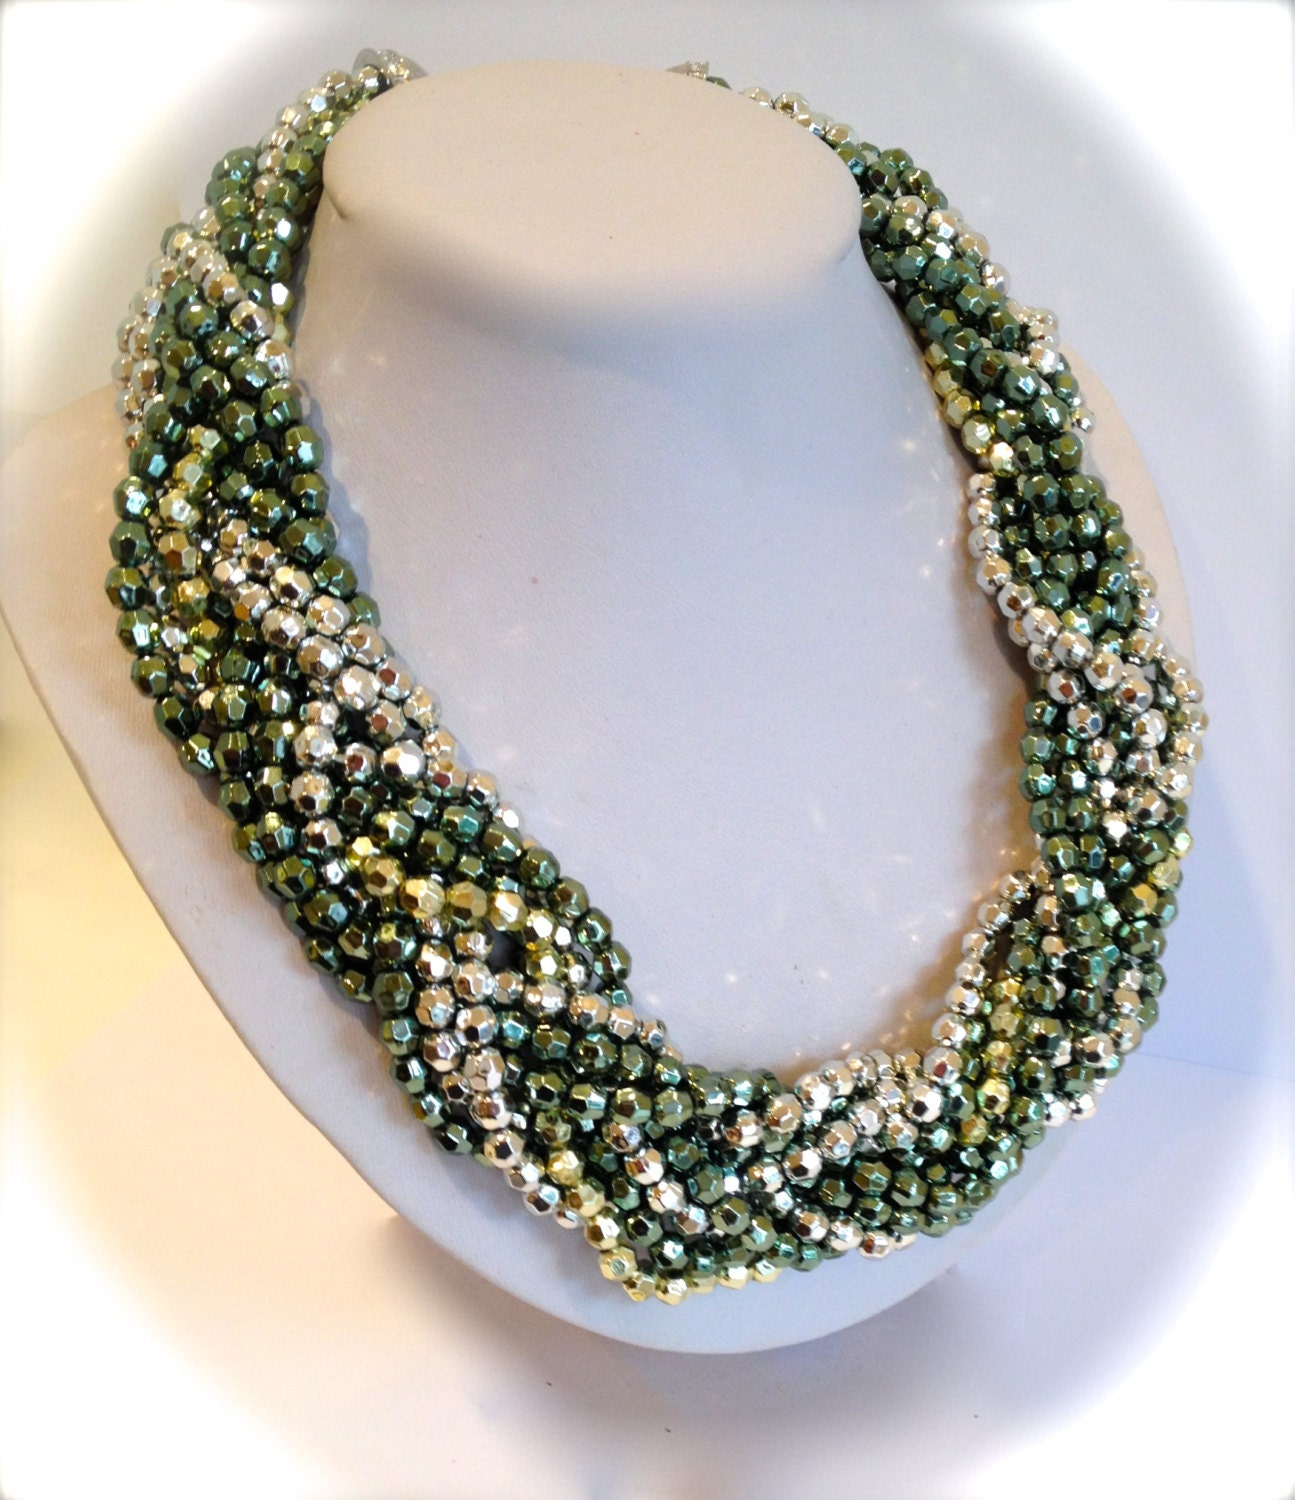 Torsade Necklace: Chunky Torsade Necklace Braided Necklace Green Silver Gold